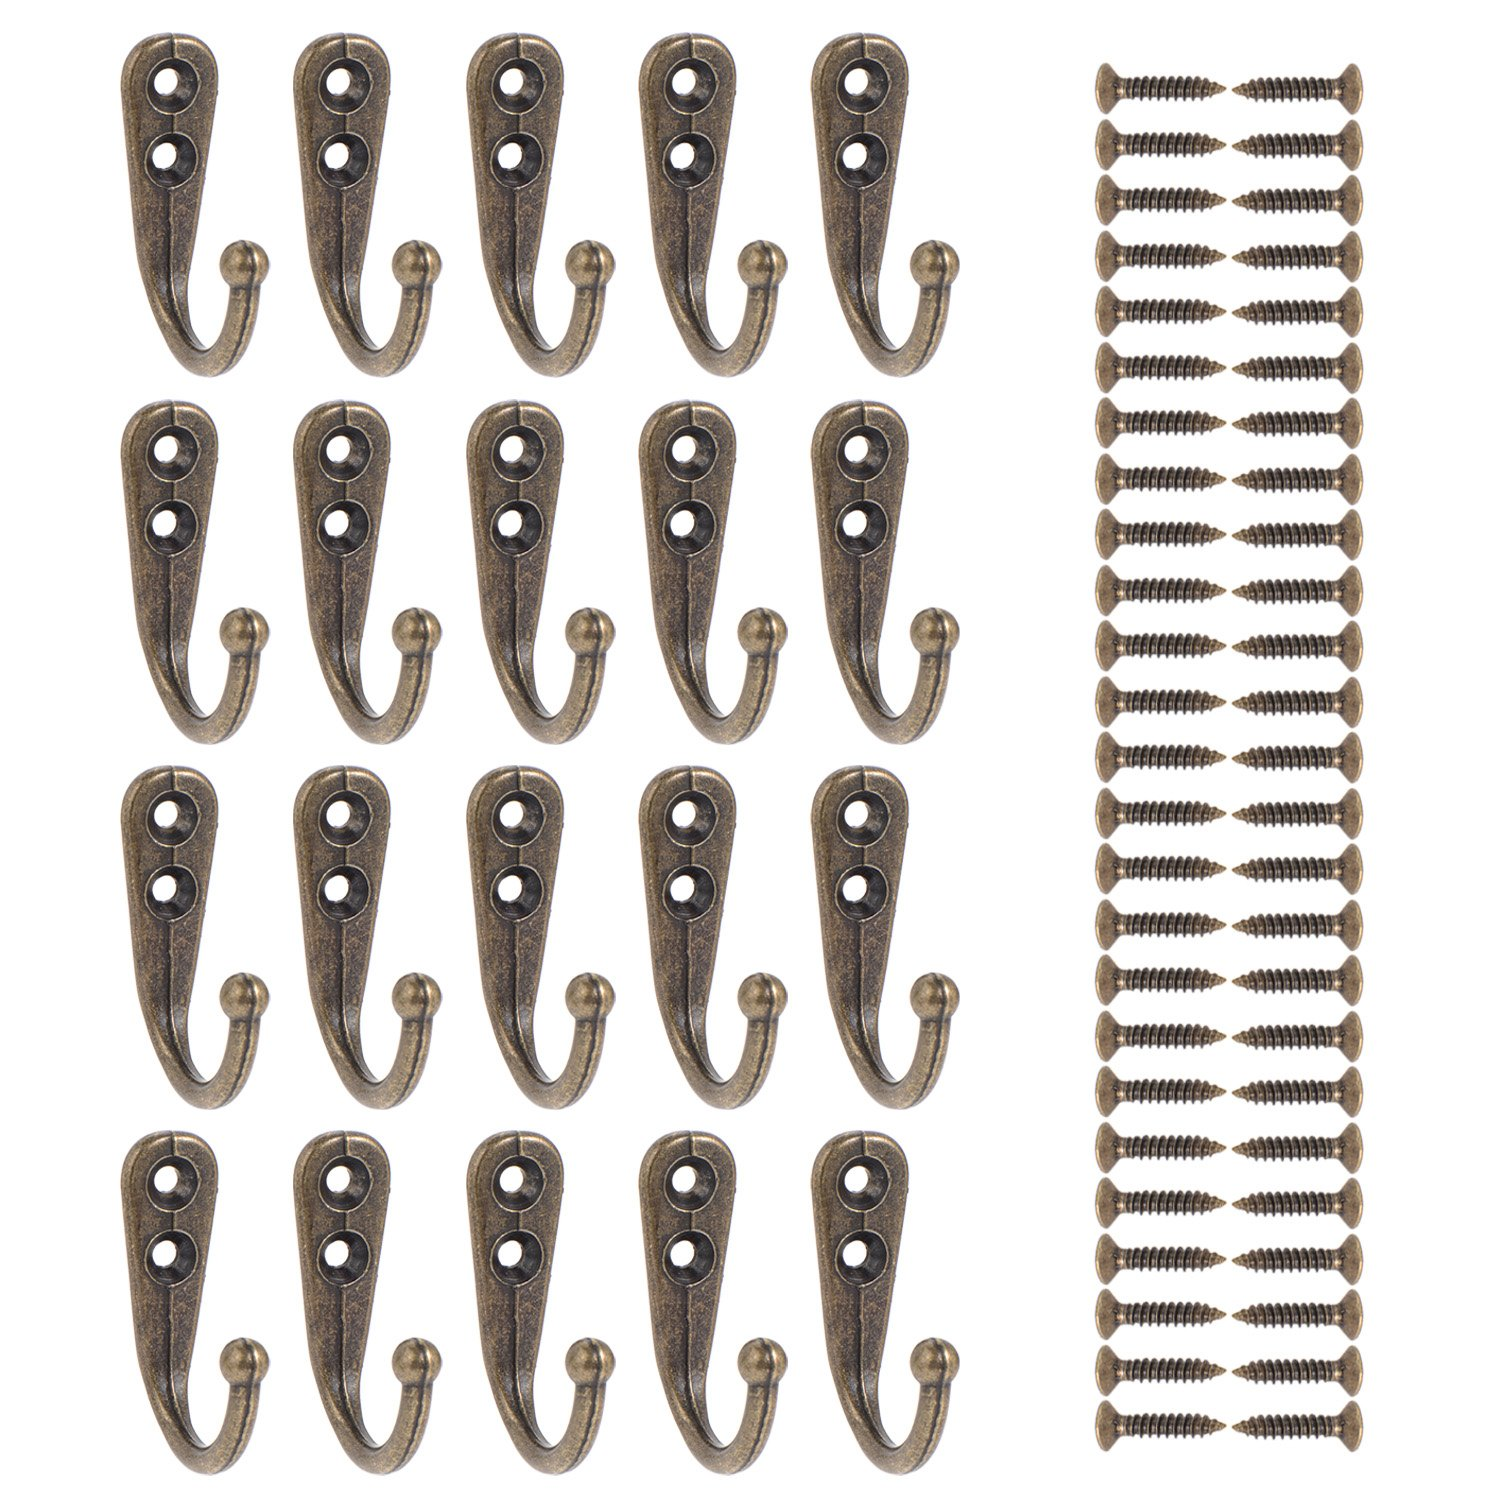 eBoot 20 Pieces Wall Mounted Hook Robe Hooks Single Coat Hanger and 50 Pieces Screws (Bronze) plastic